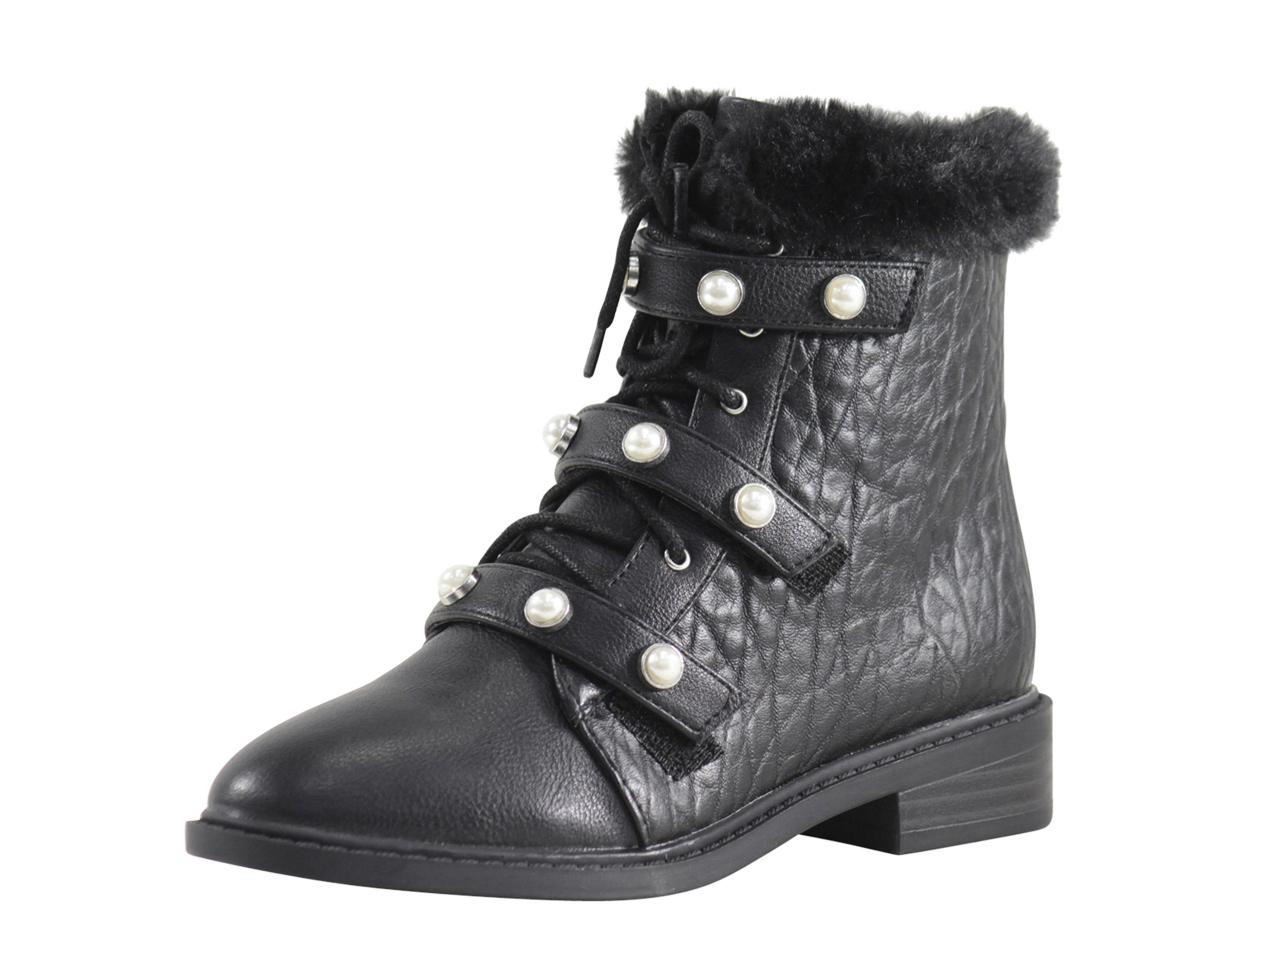 5d203da3c Vince Camuto Little/Big Girl's Talei Ankle Boots Shoes